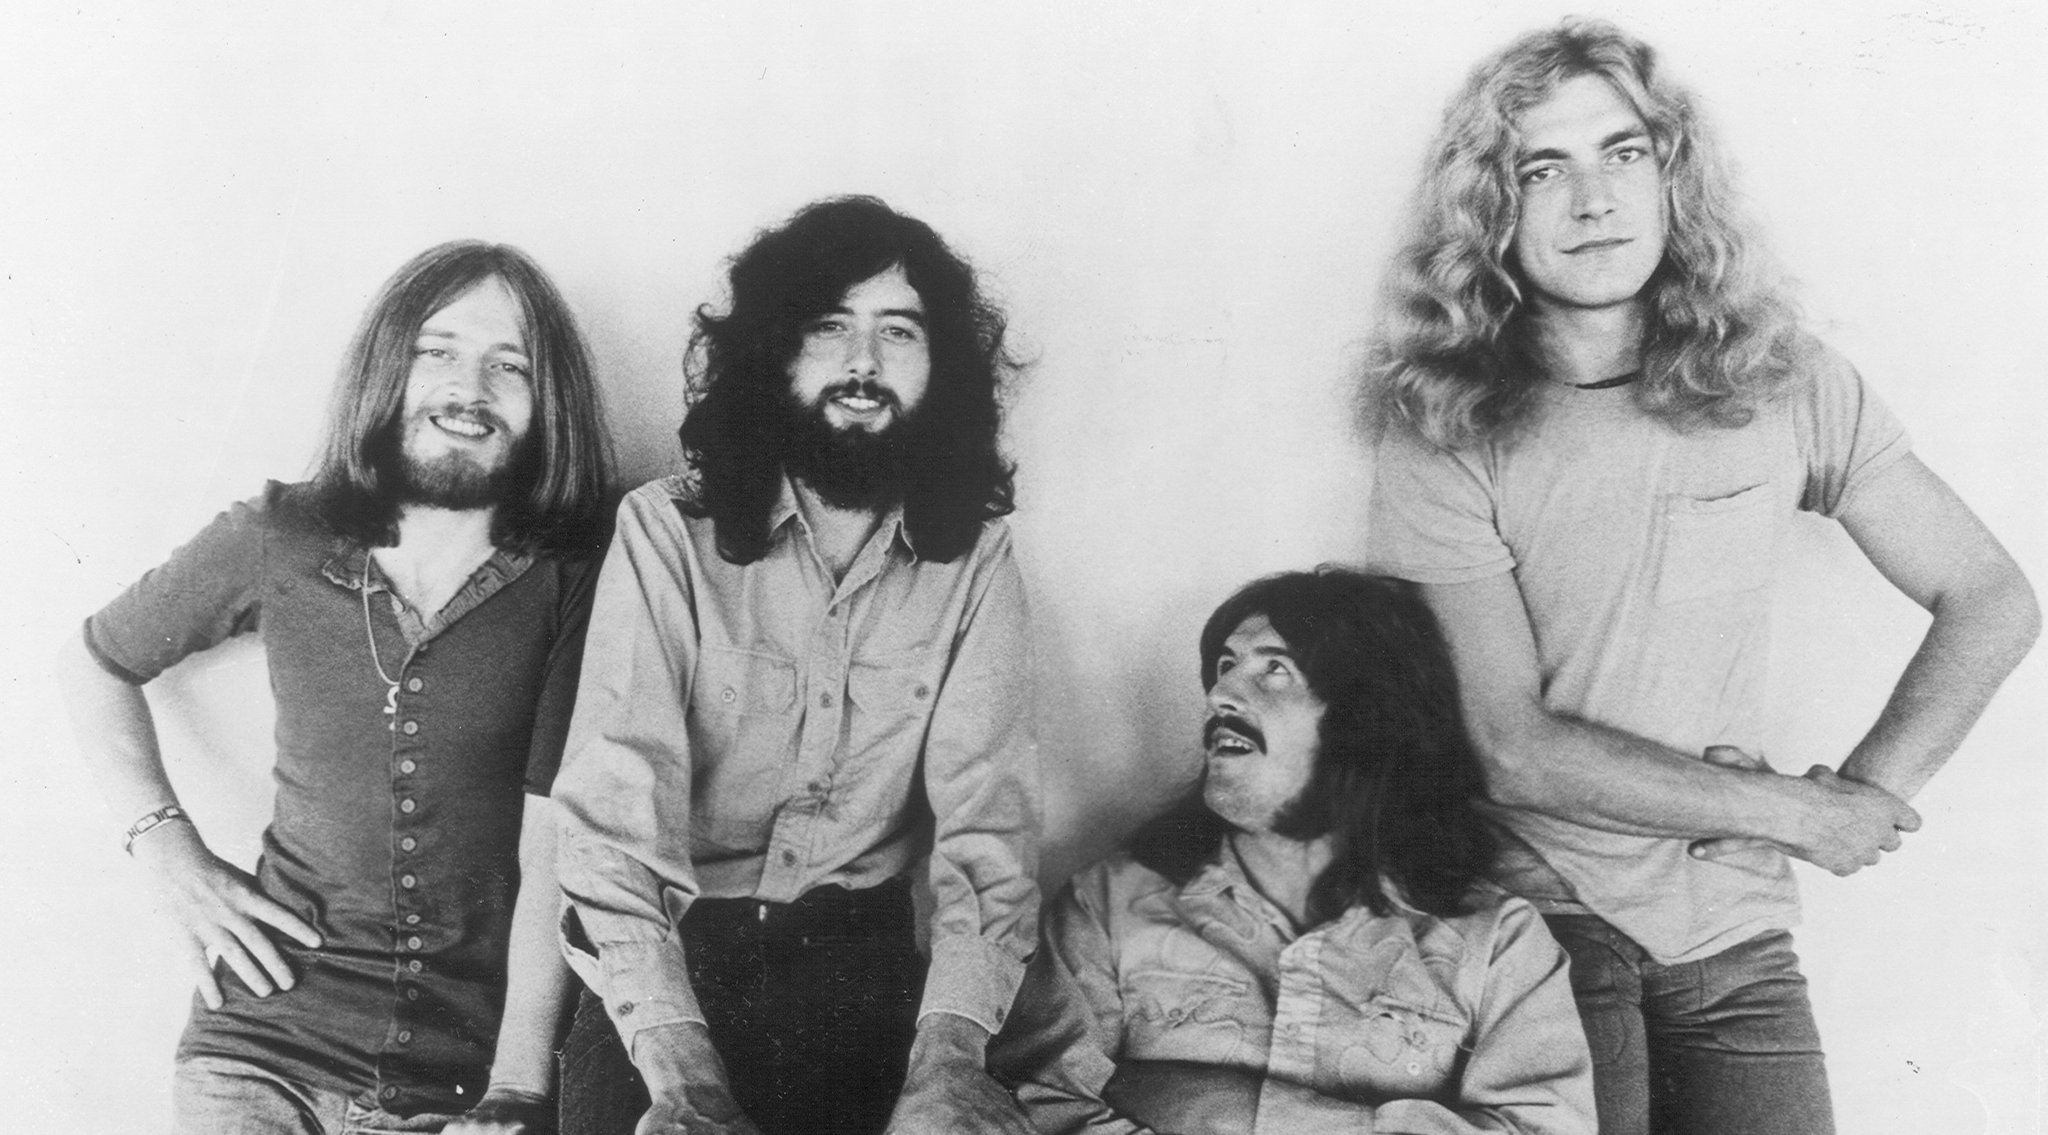 Led Zeppelin's self-titled album turns 49 today. Revisit our original review of the LP https://t.co/mv01ouXThB https://t.co/gnuQGMBoe4